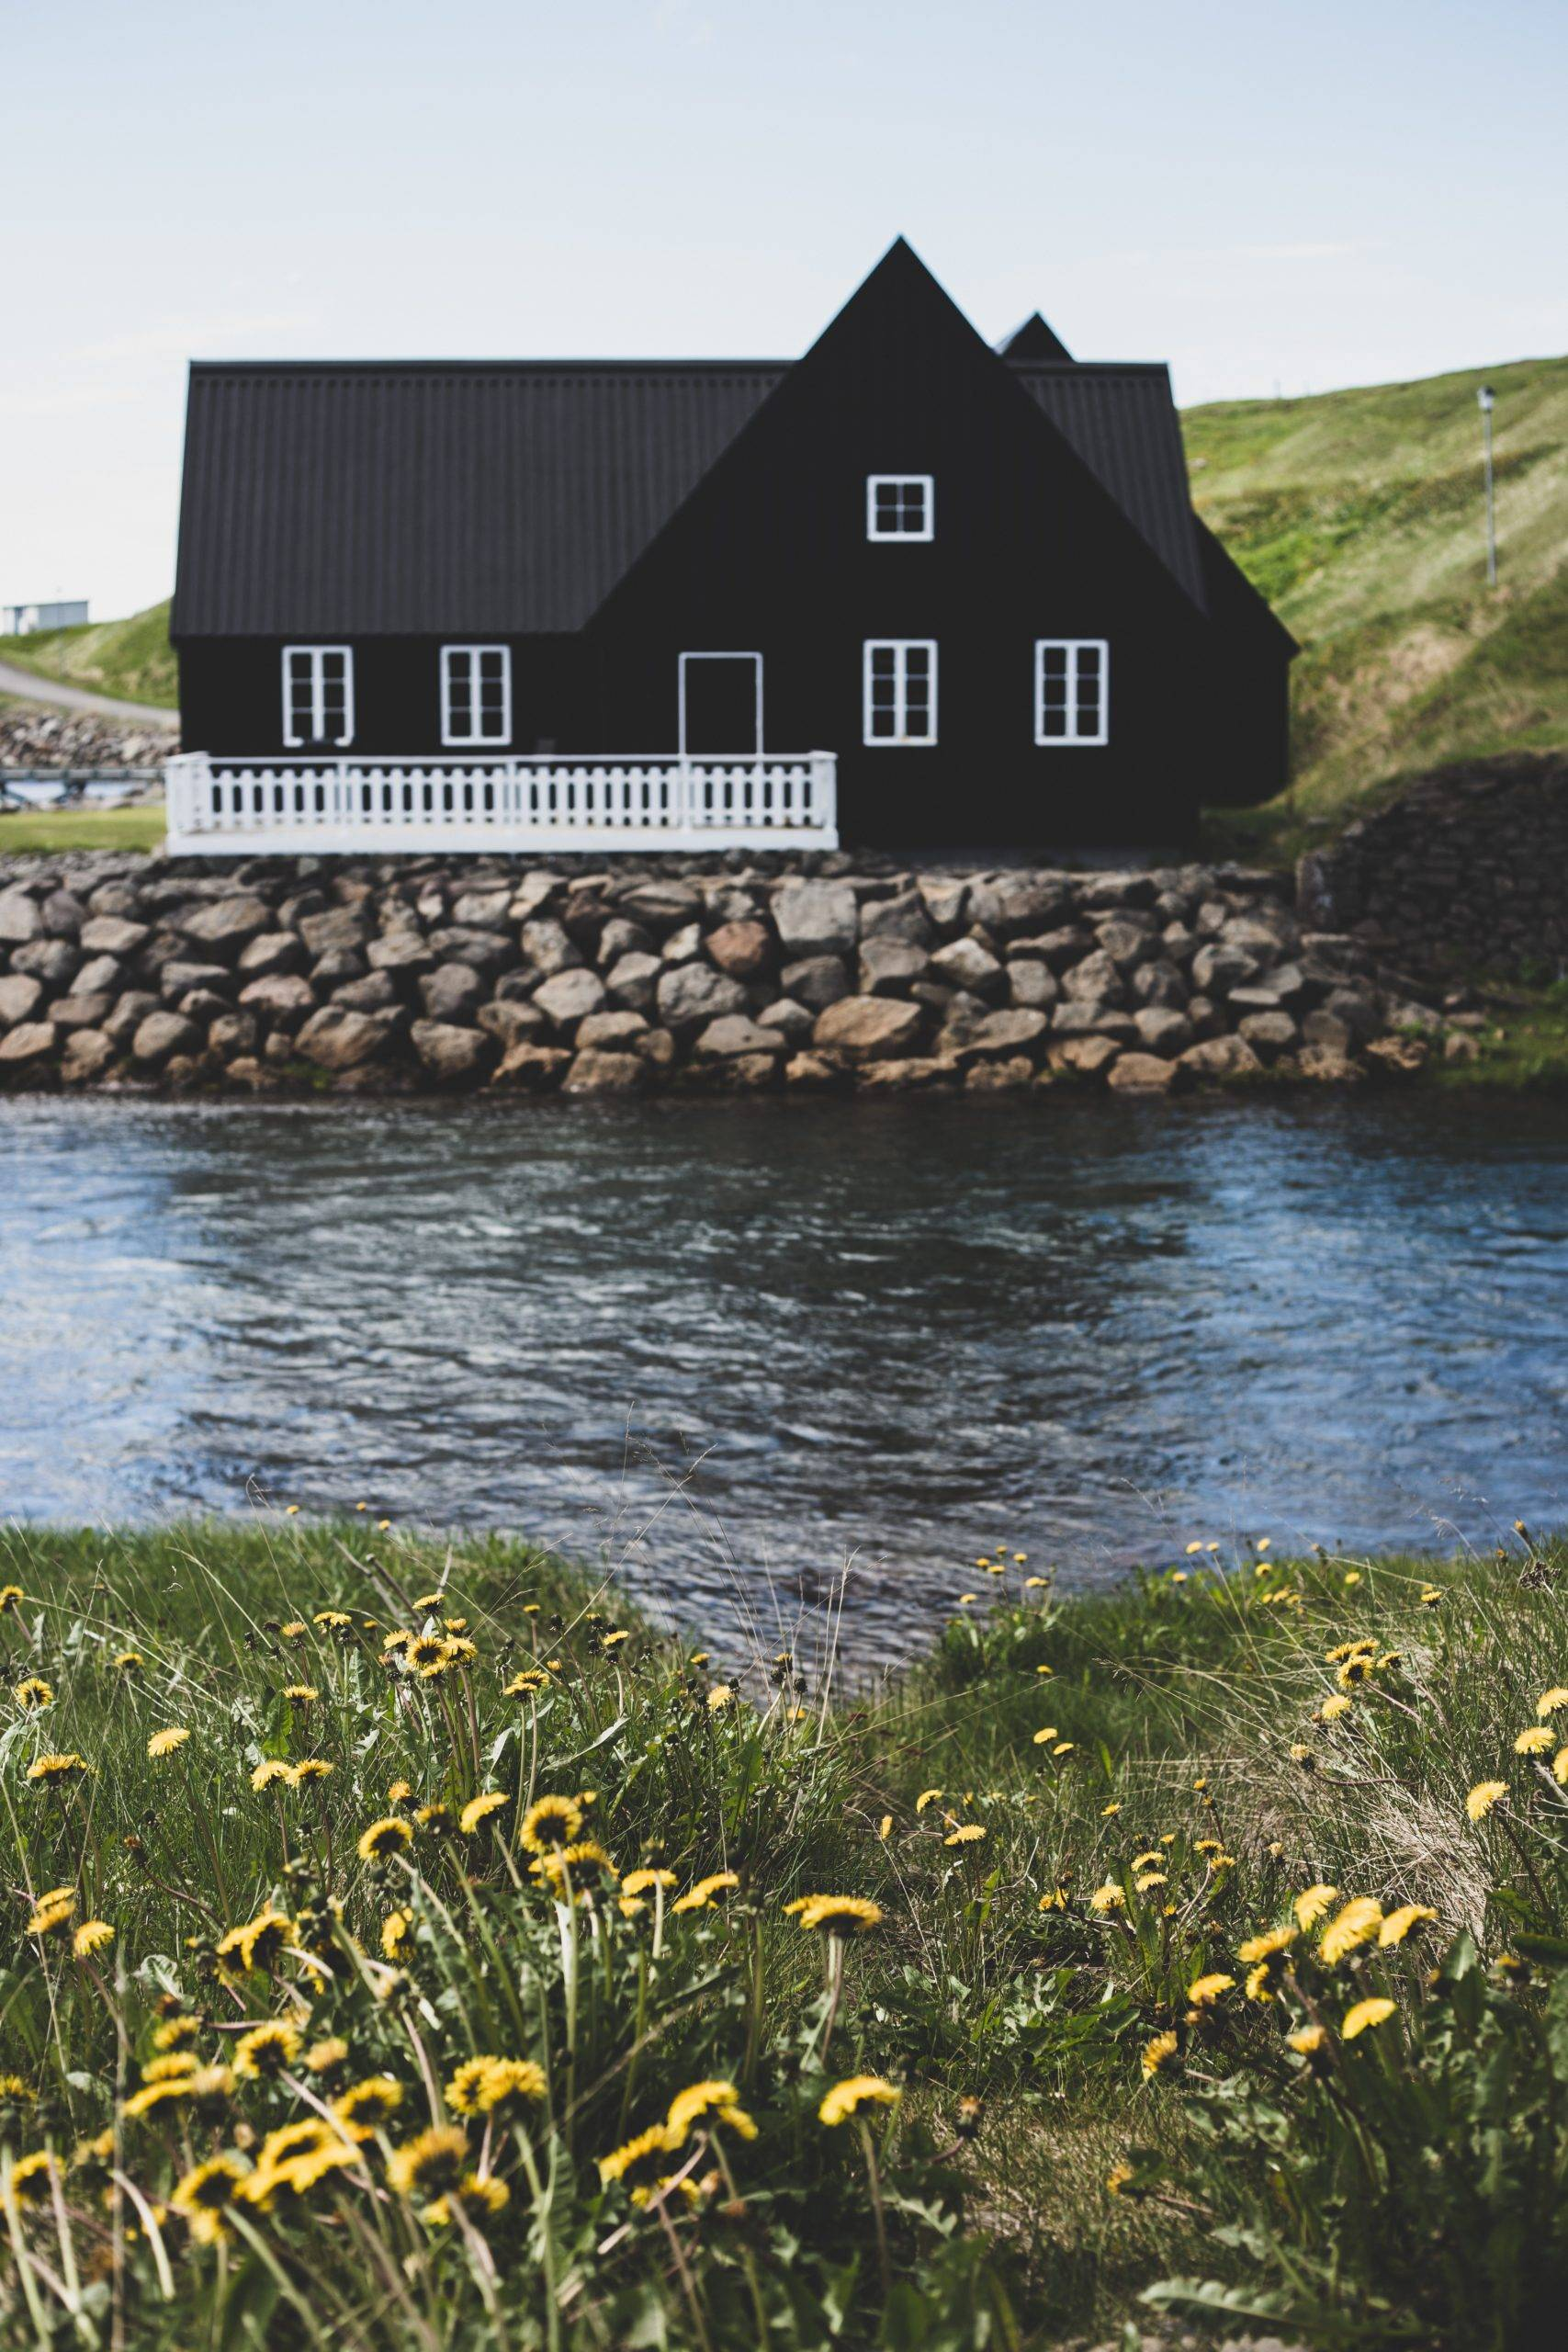 Black house by the river